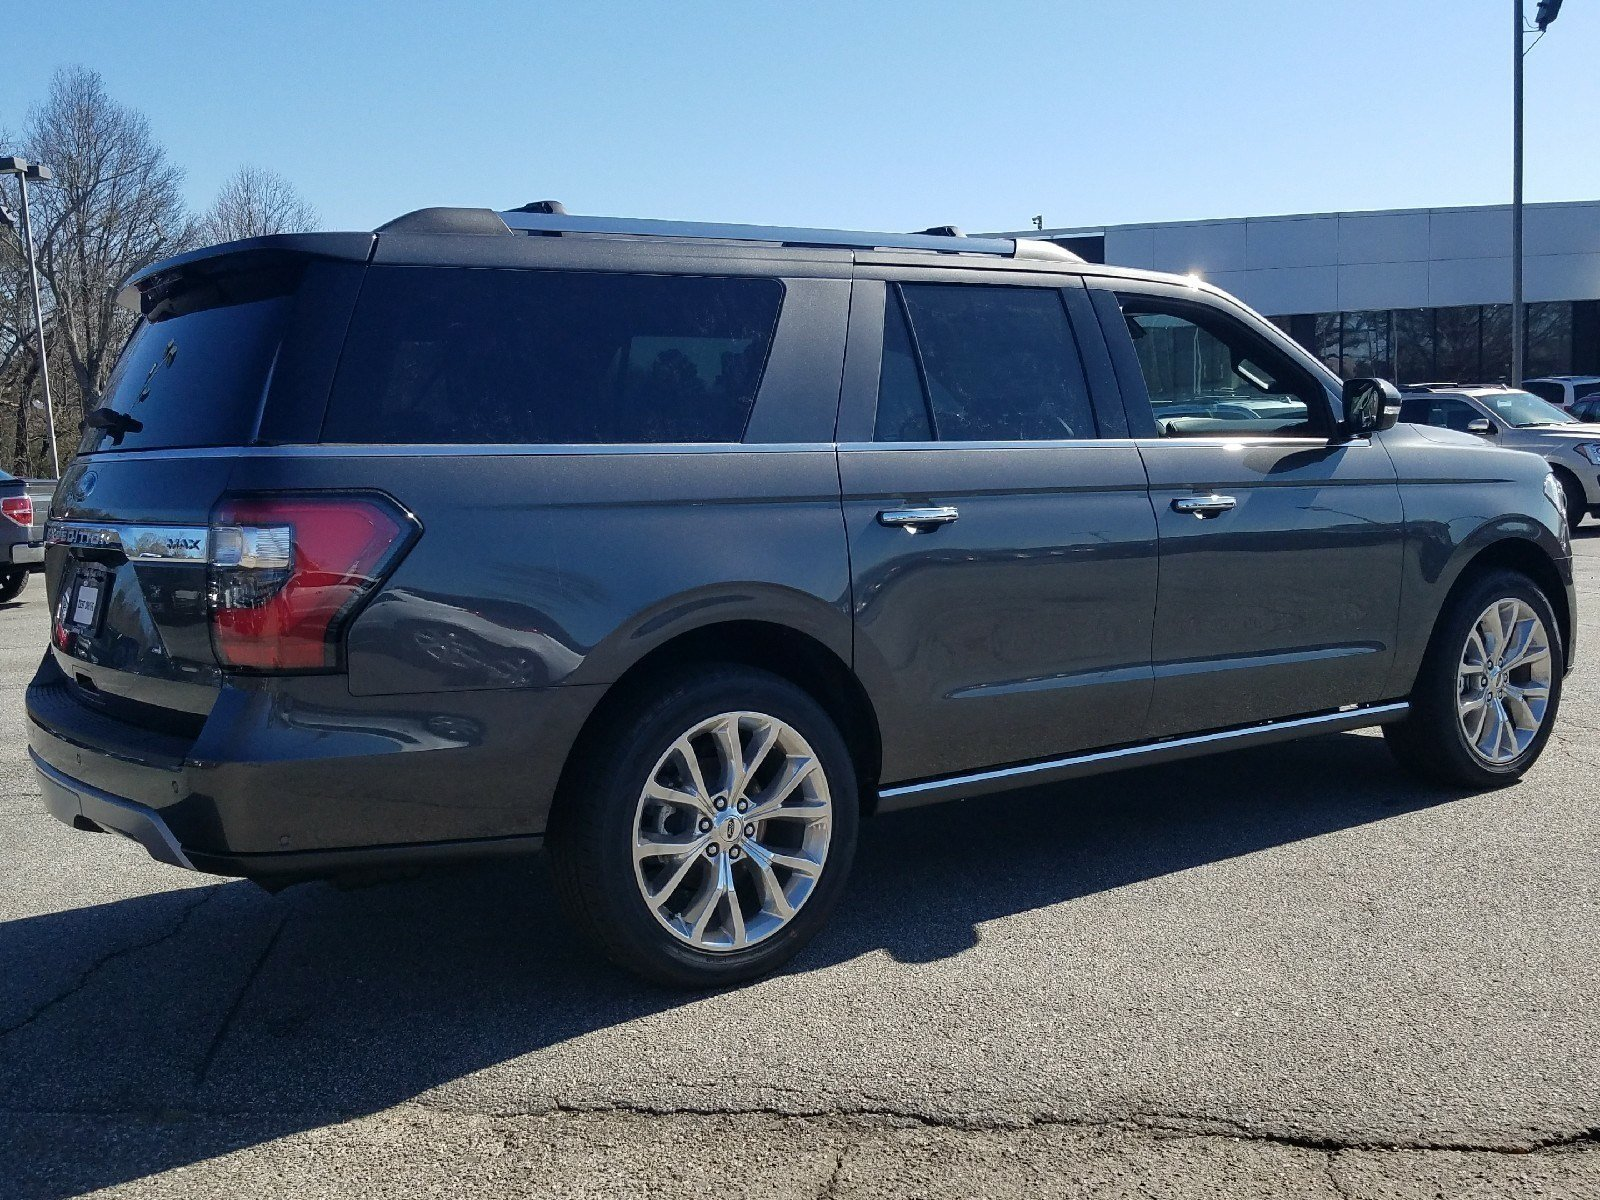 2018 Ford Expedition Limited 4 Door 3.5L EcoBoost V6 Engine with Auto Start-Stop Technology Automatic RWD SUV